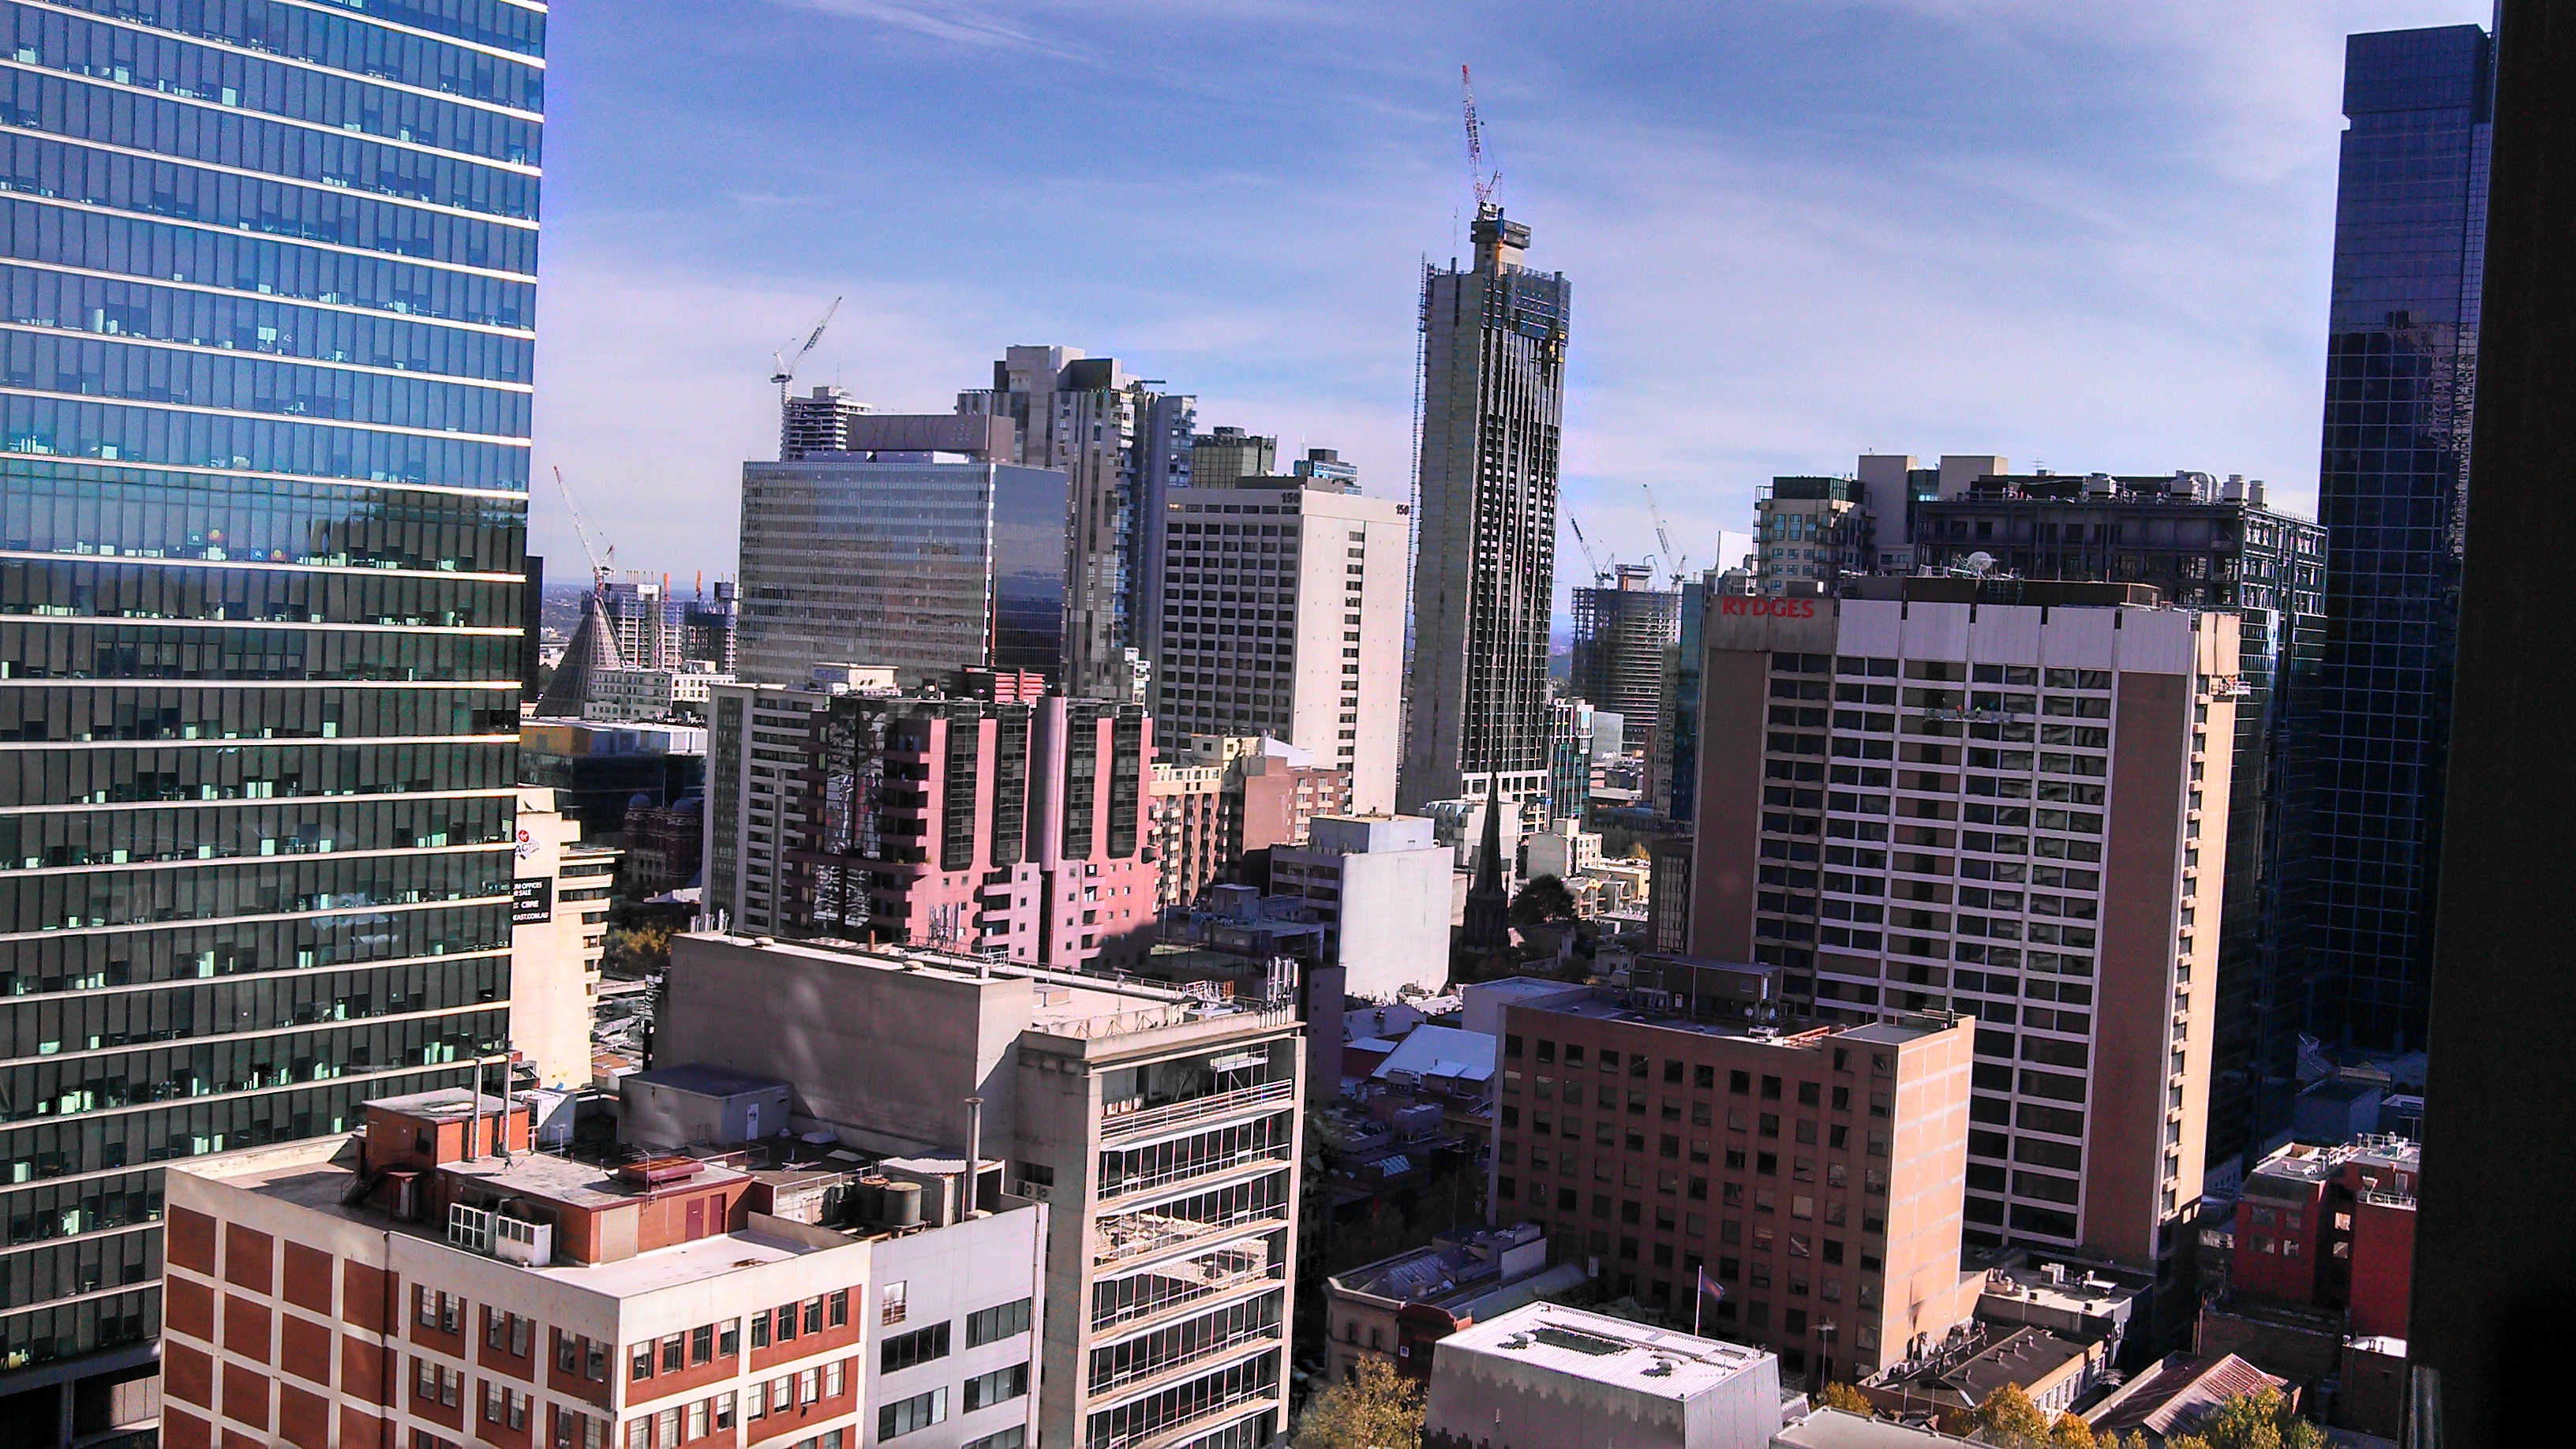 Sheraton Hotel Melbourne views - click to see an enlarged version of this image